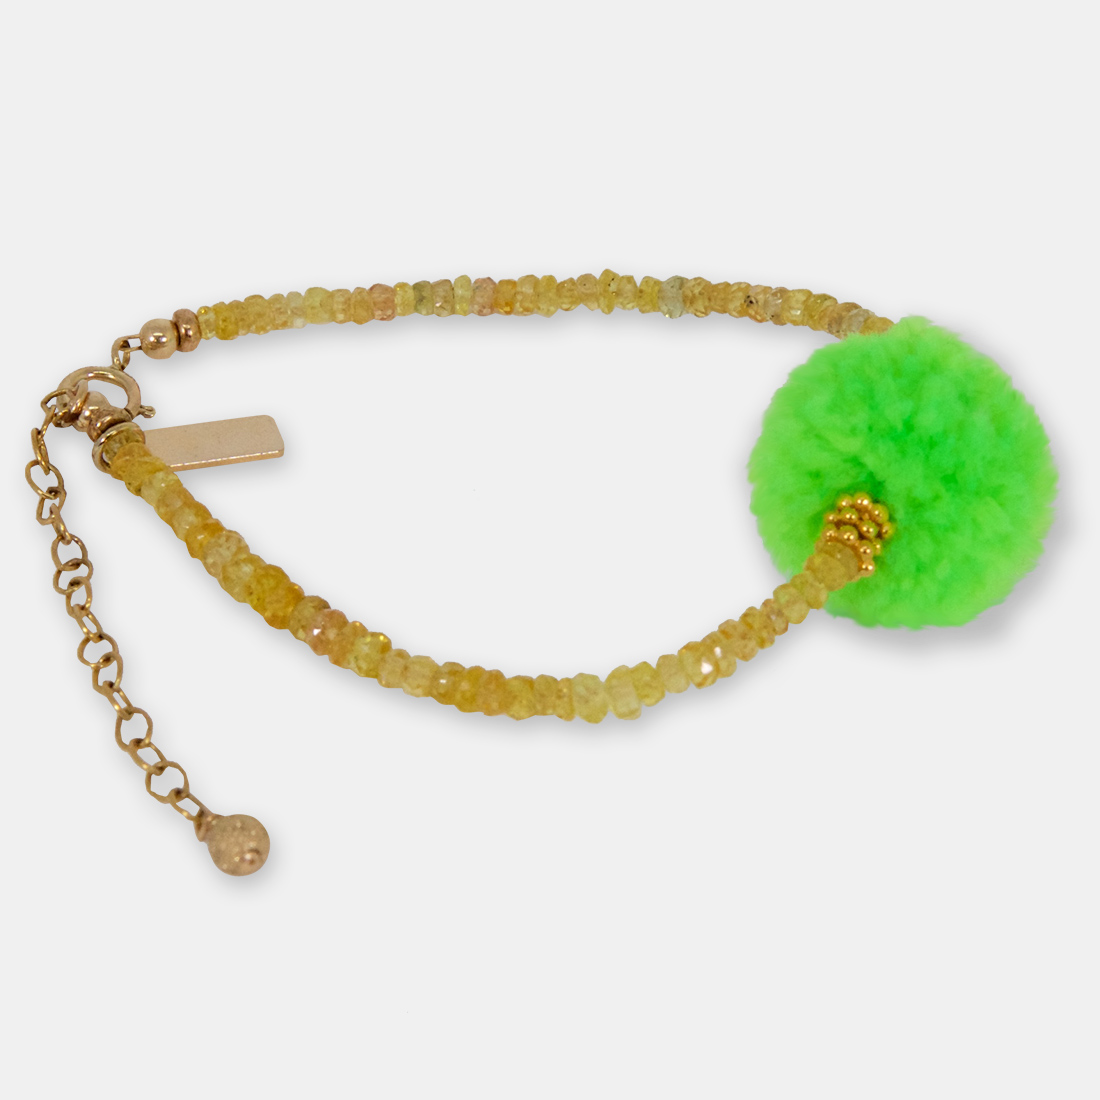 Seaweed Lace Middle Pom Pom by Sacred Confetti